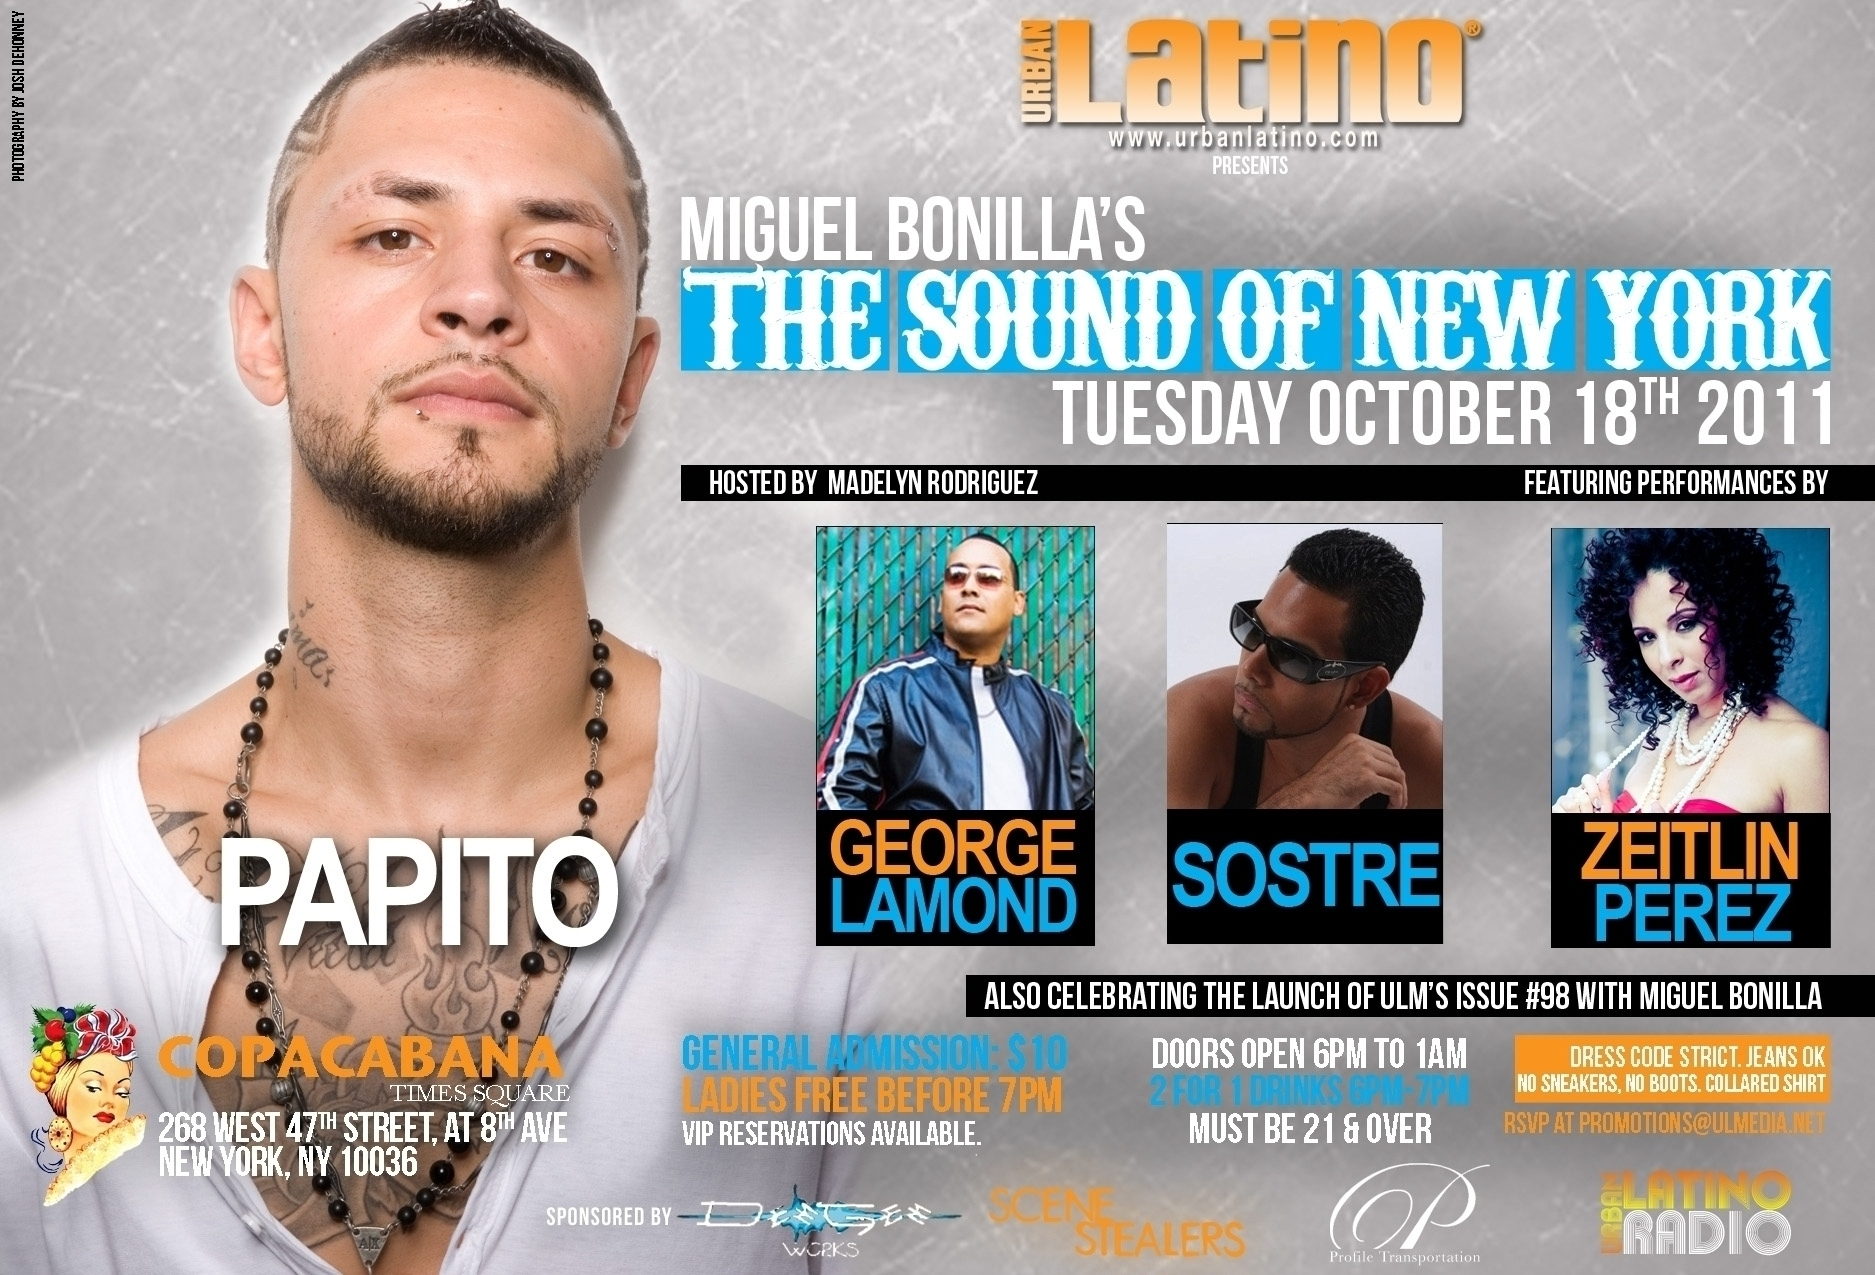 Papito Performs at Copacabana in NYC Tonight